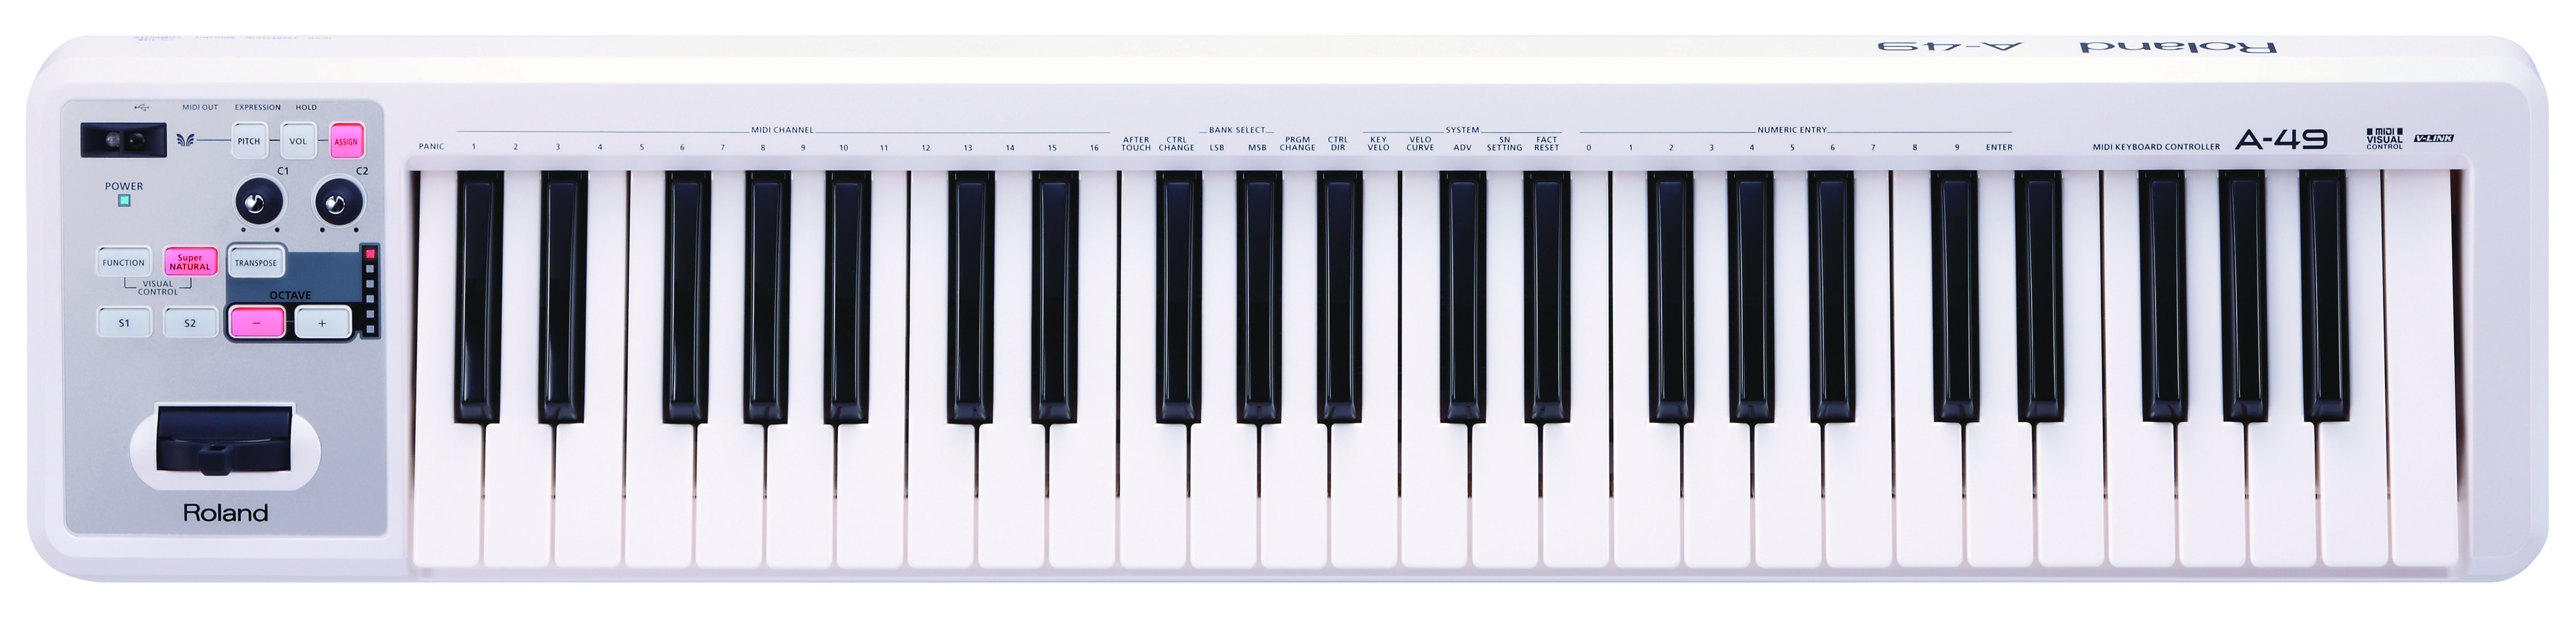 Claviers & Pianos - CLAVIERS - CLAVIERS MAITRES - ROLAND - A-49-WH - Royez Musik